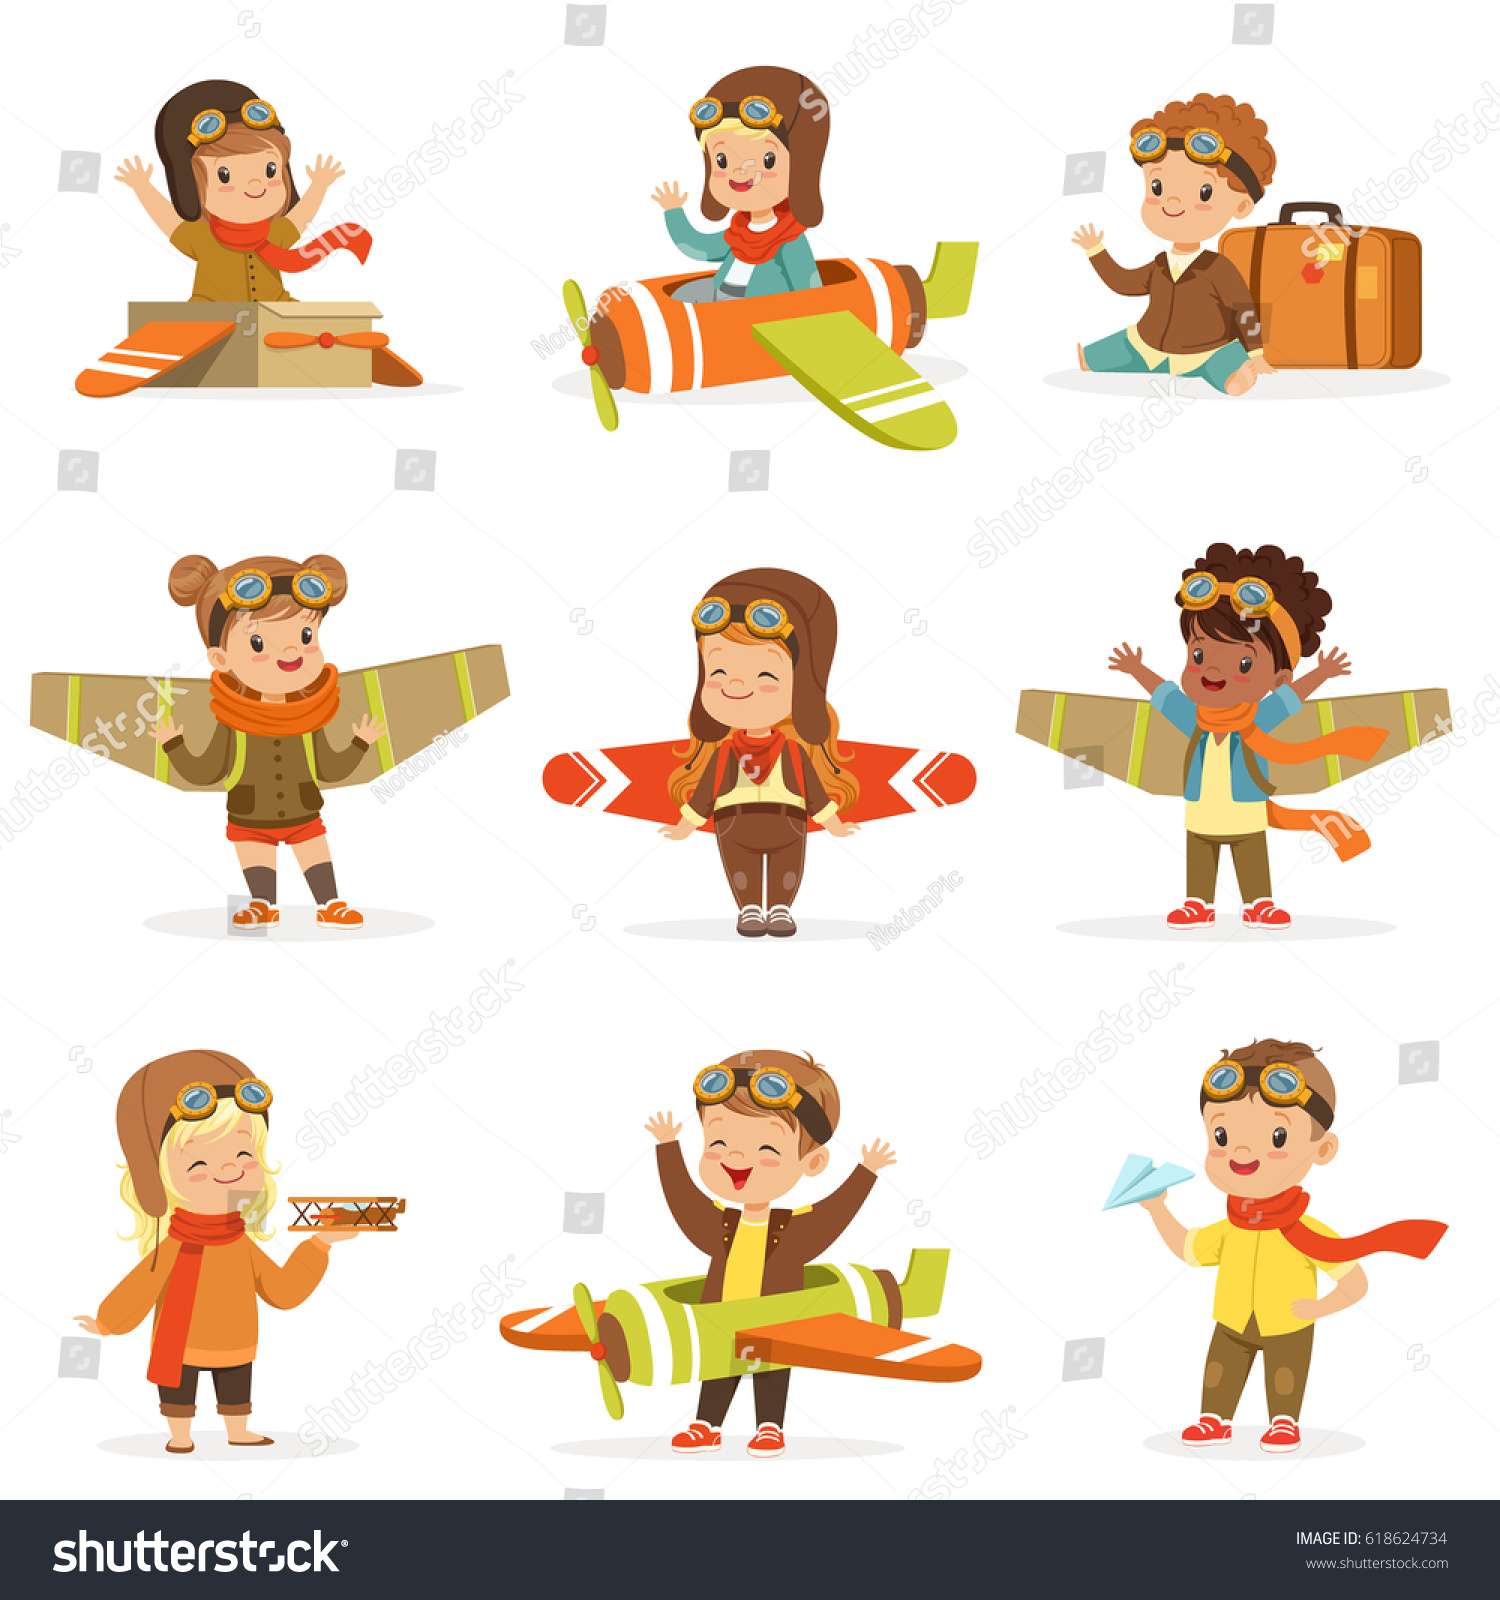 Small Children In Pilot Costumes Dreaming Of Piloting The Plane Playing With Toys Adorable Cartoon